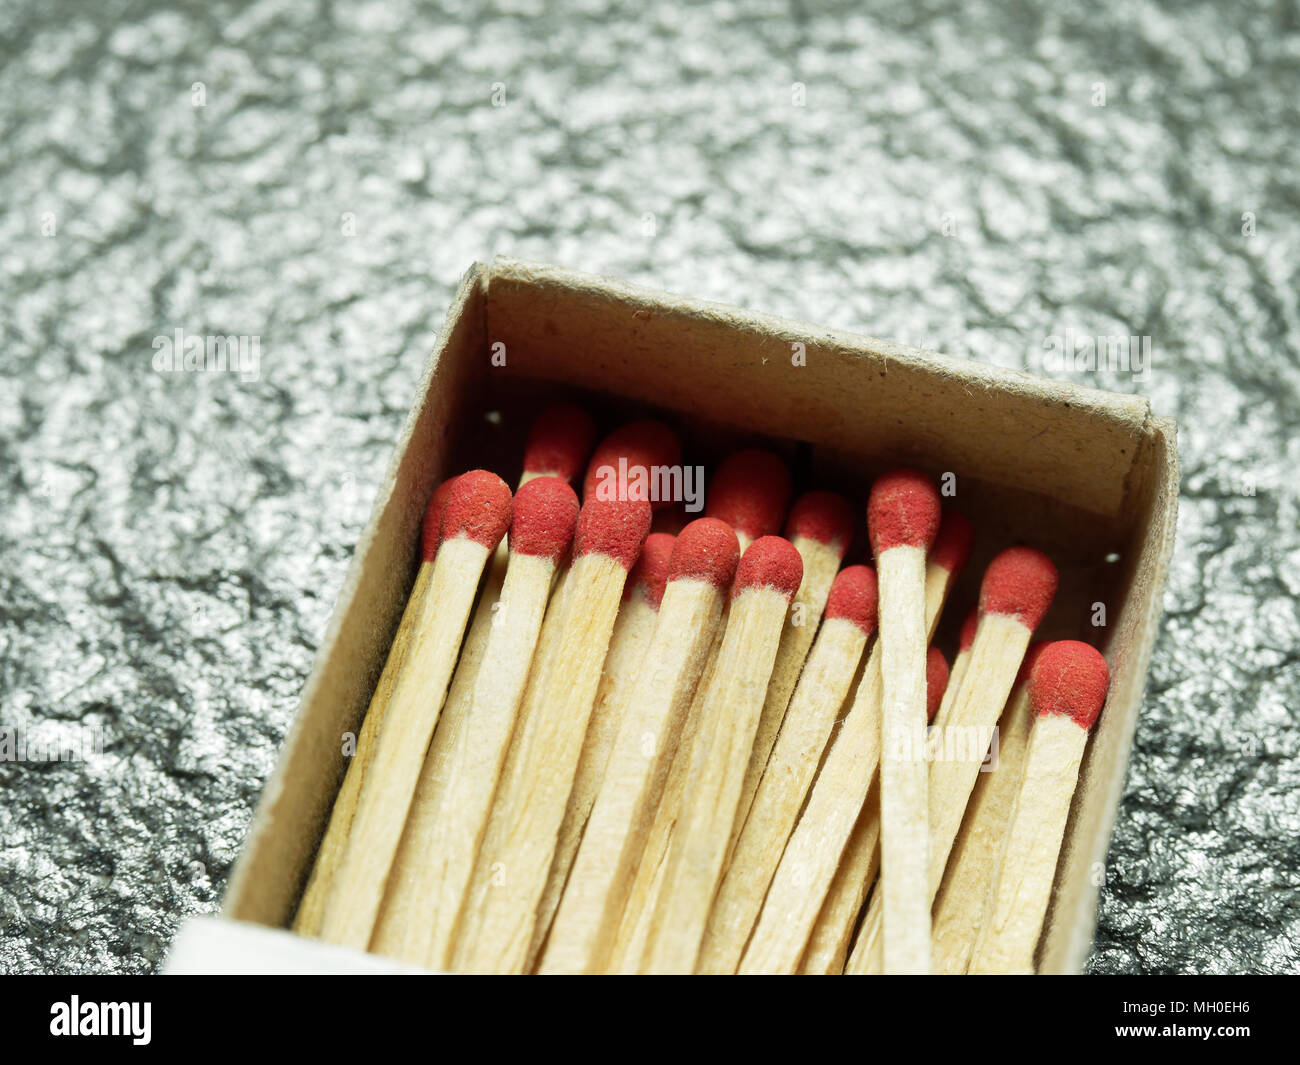 A group of wooden match sticks with red head in match box over black or dark granite texture with concepts of energy, old fashion, vintage, and retro - Stock Image